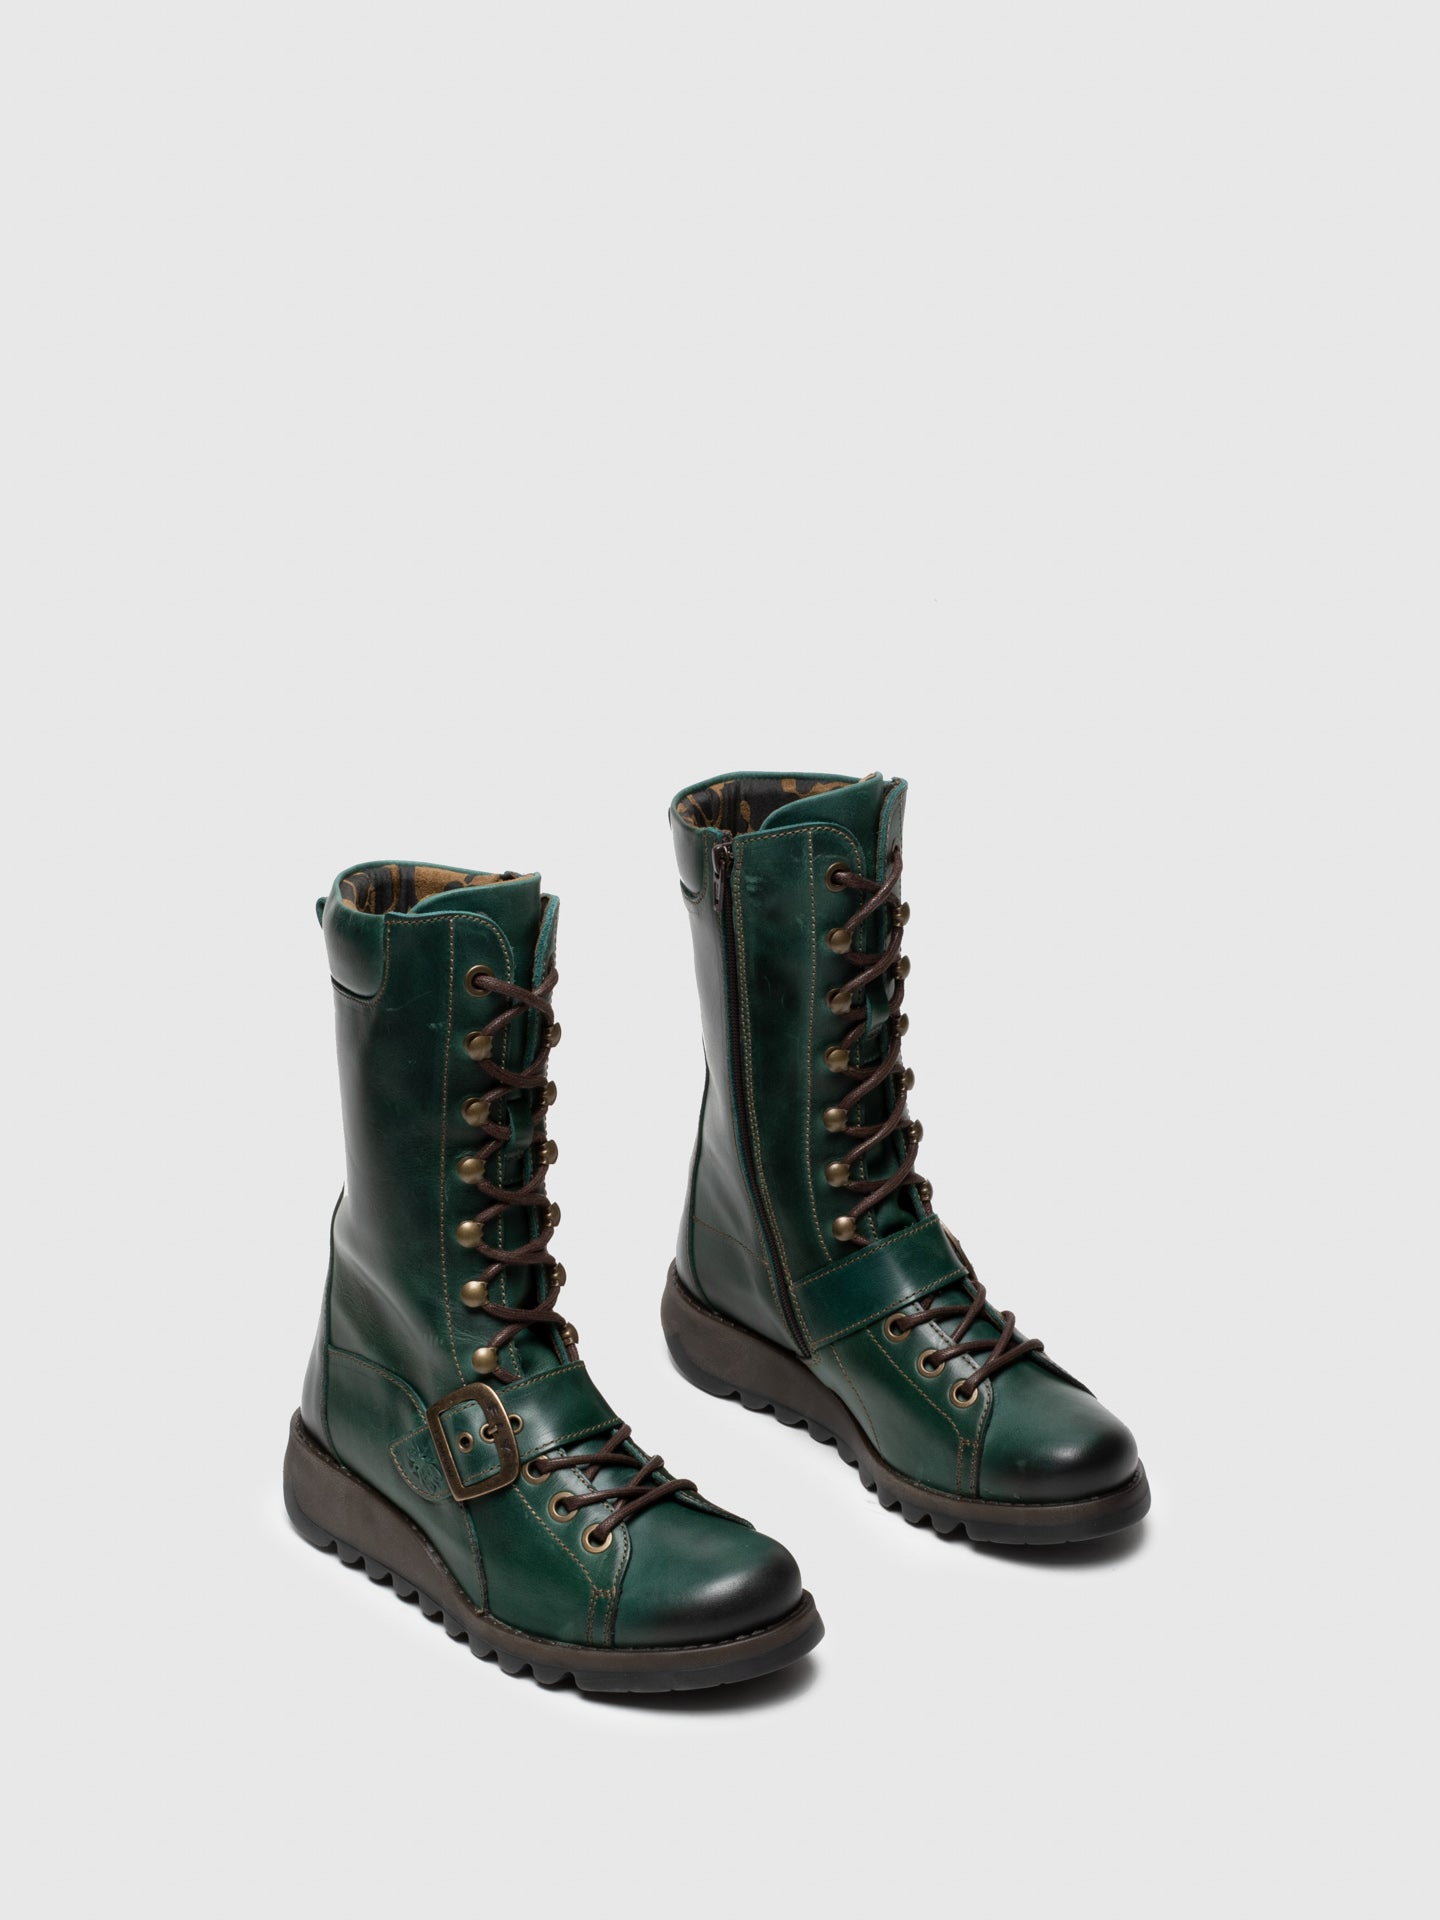 Green Lace-up Boots - Overcube